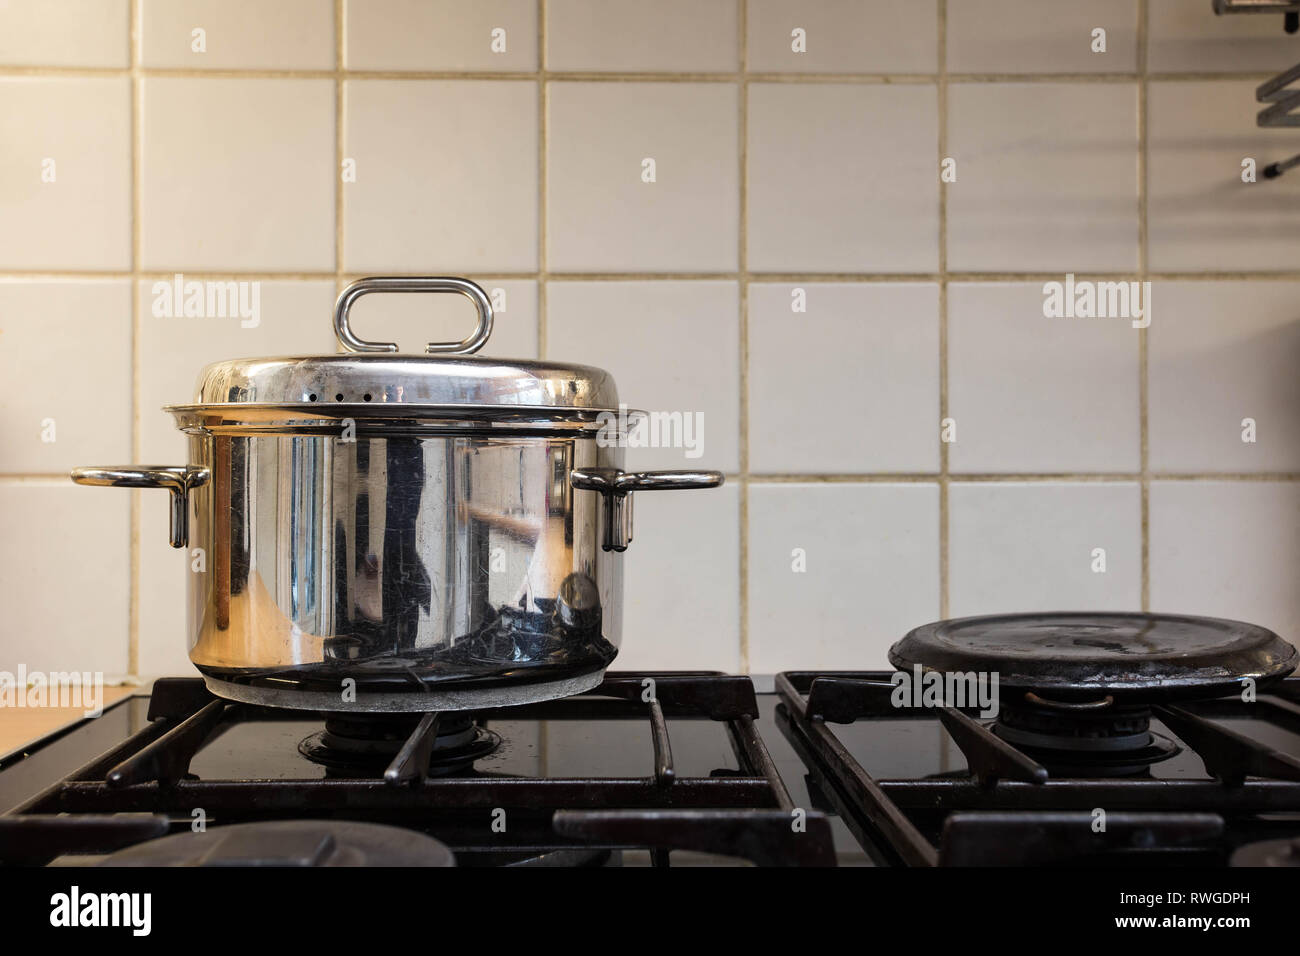 cooking pan on the gas stove, old design - Stock Image